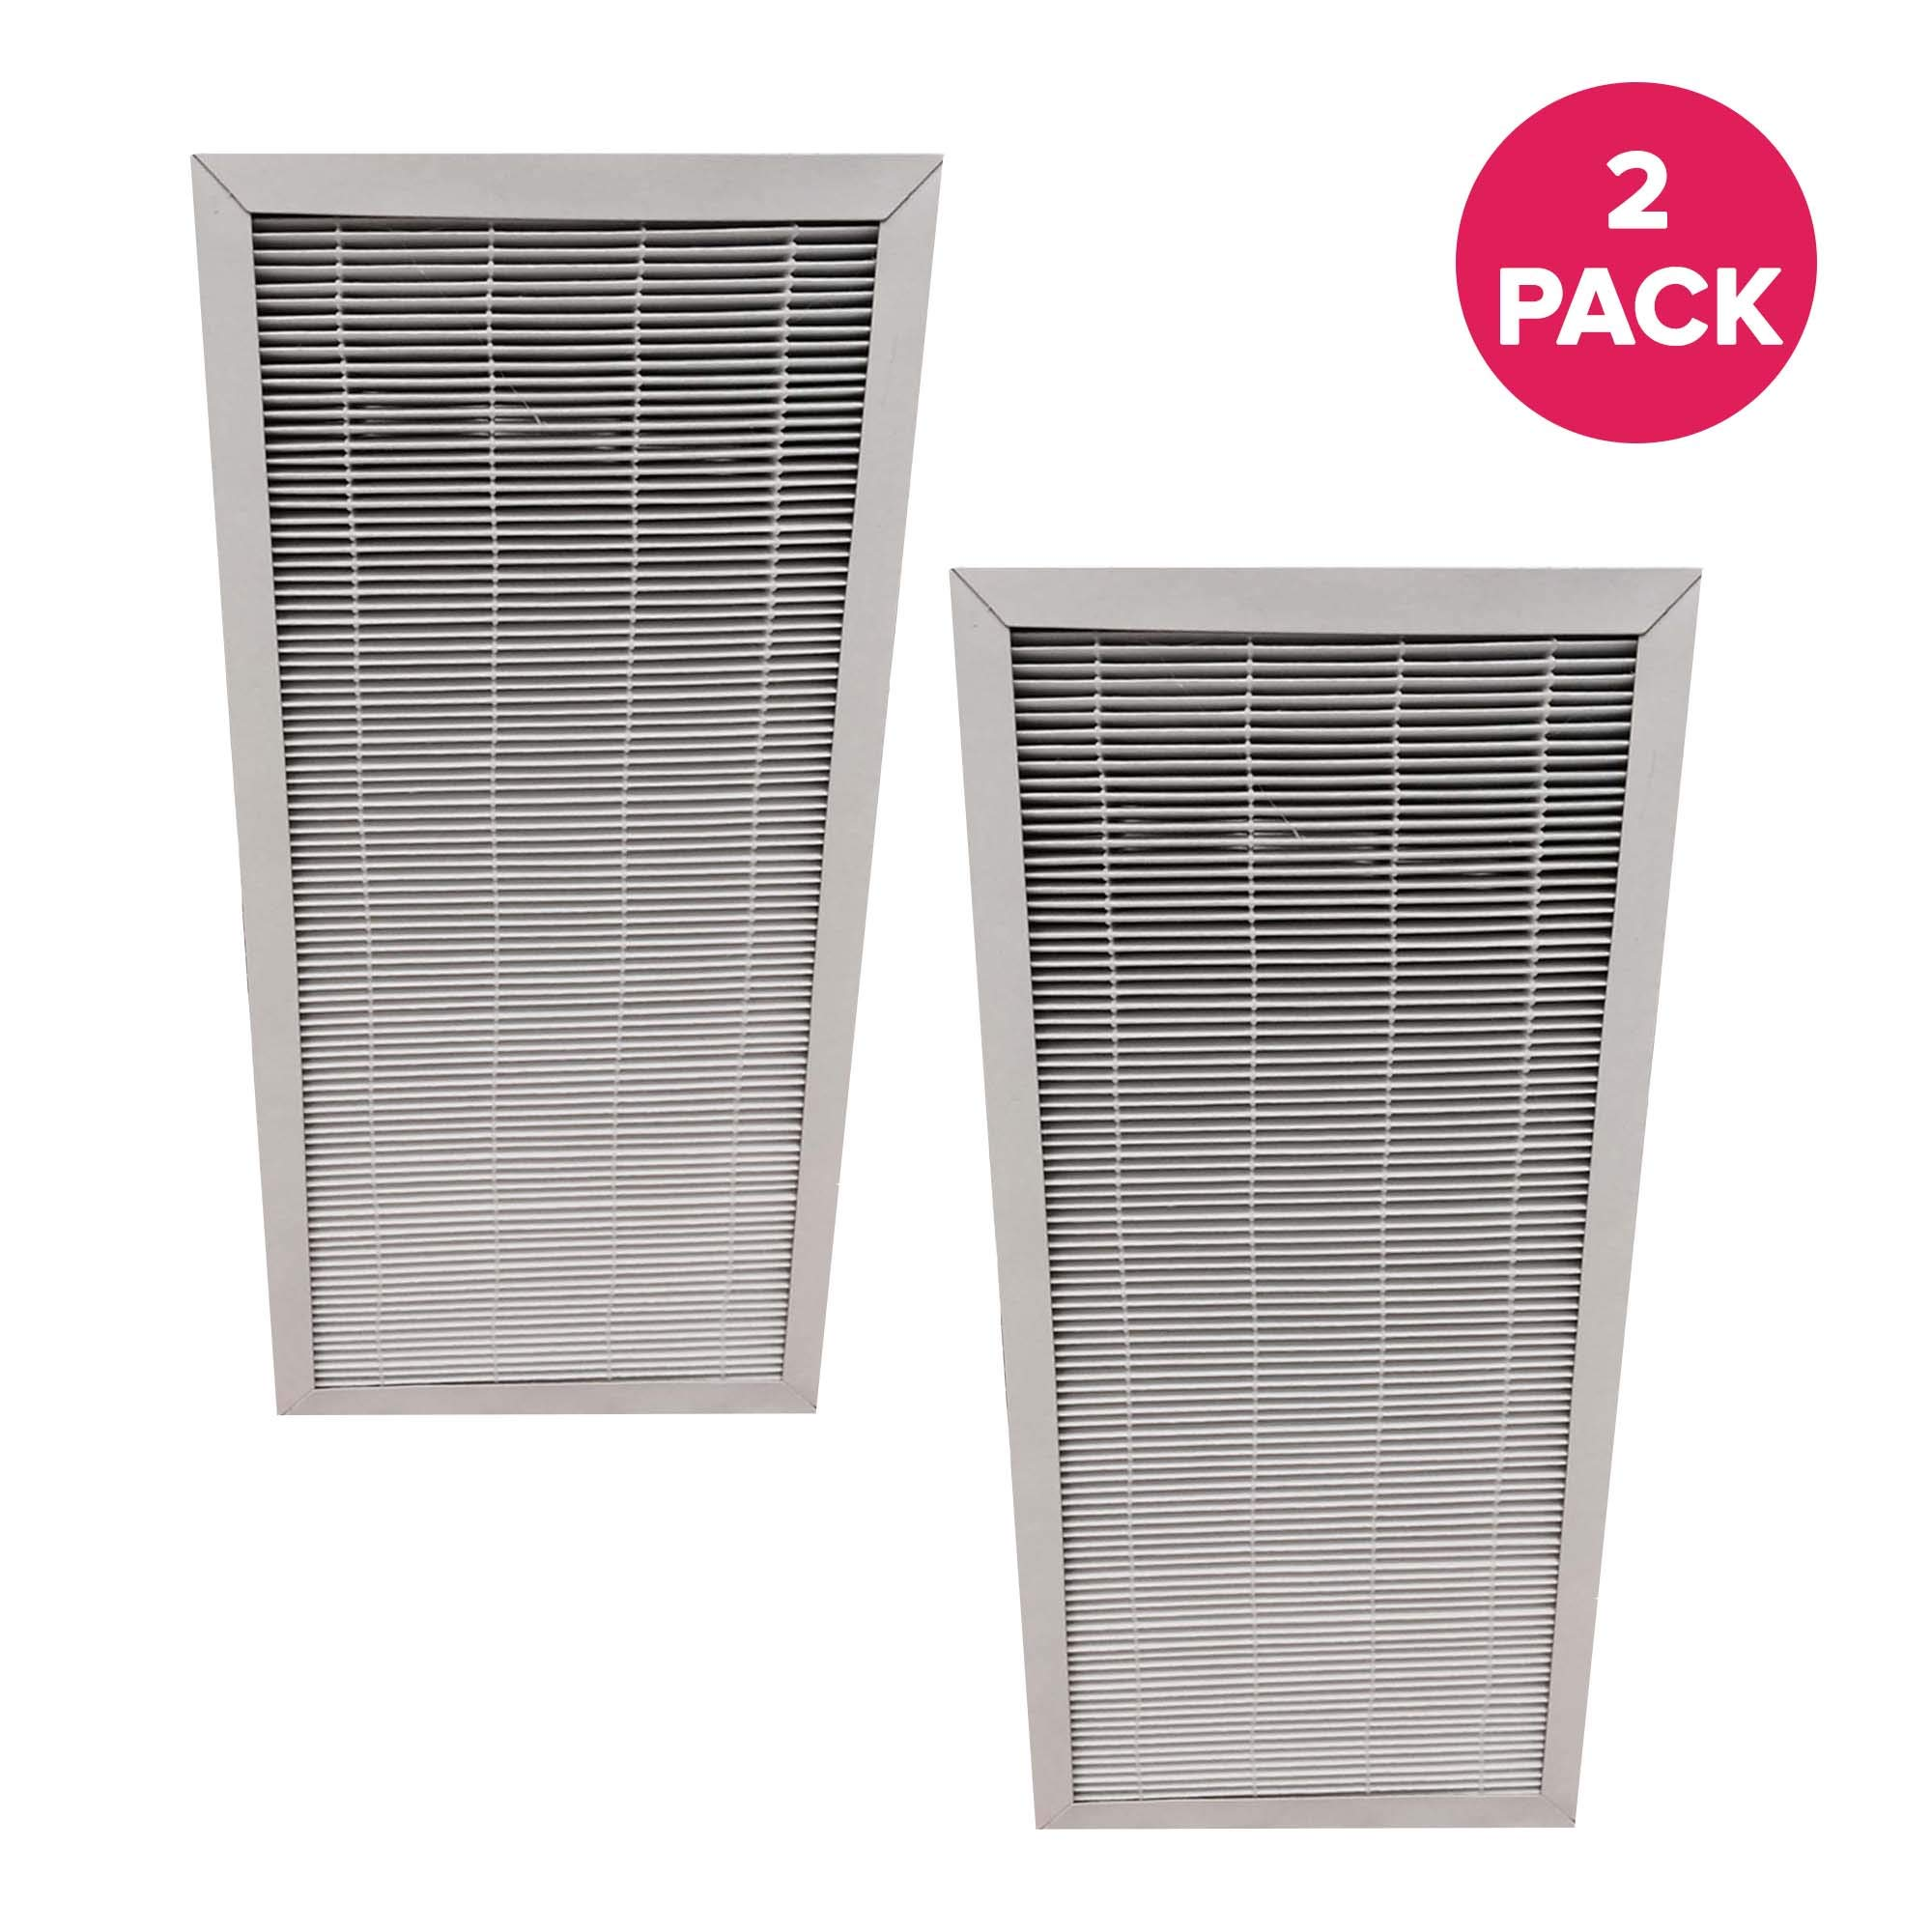 Think Crucial Replacements for Deluxe Blueair 400 Air Purifier Filter Fits All 400 Series Air Purifiers (2 Pack)